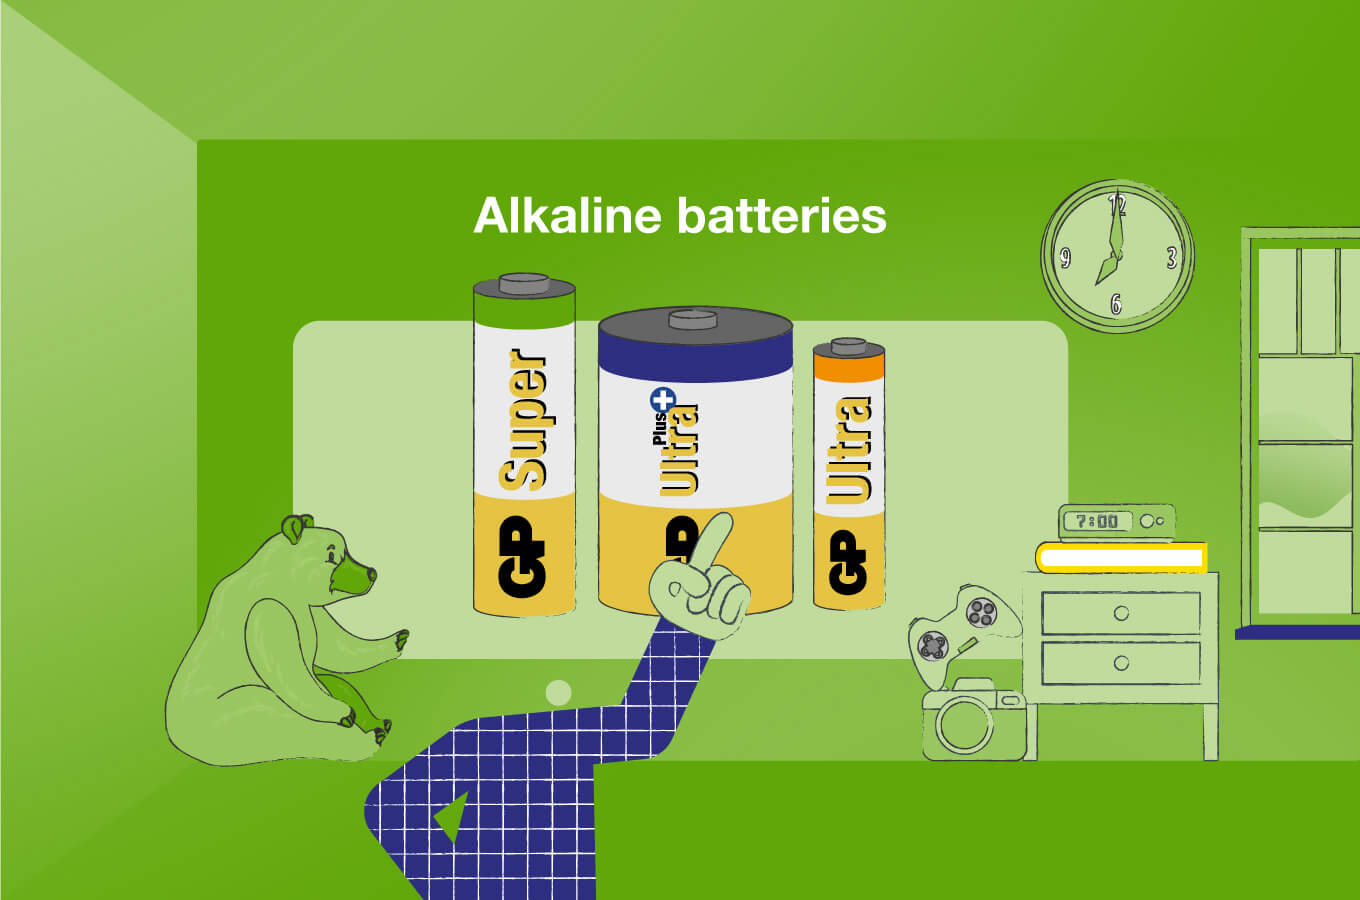 power up your battery knowledge - alkaline batteries